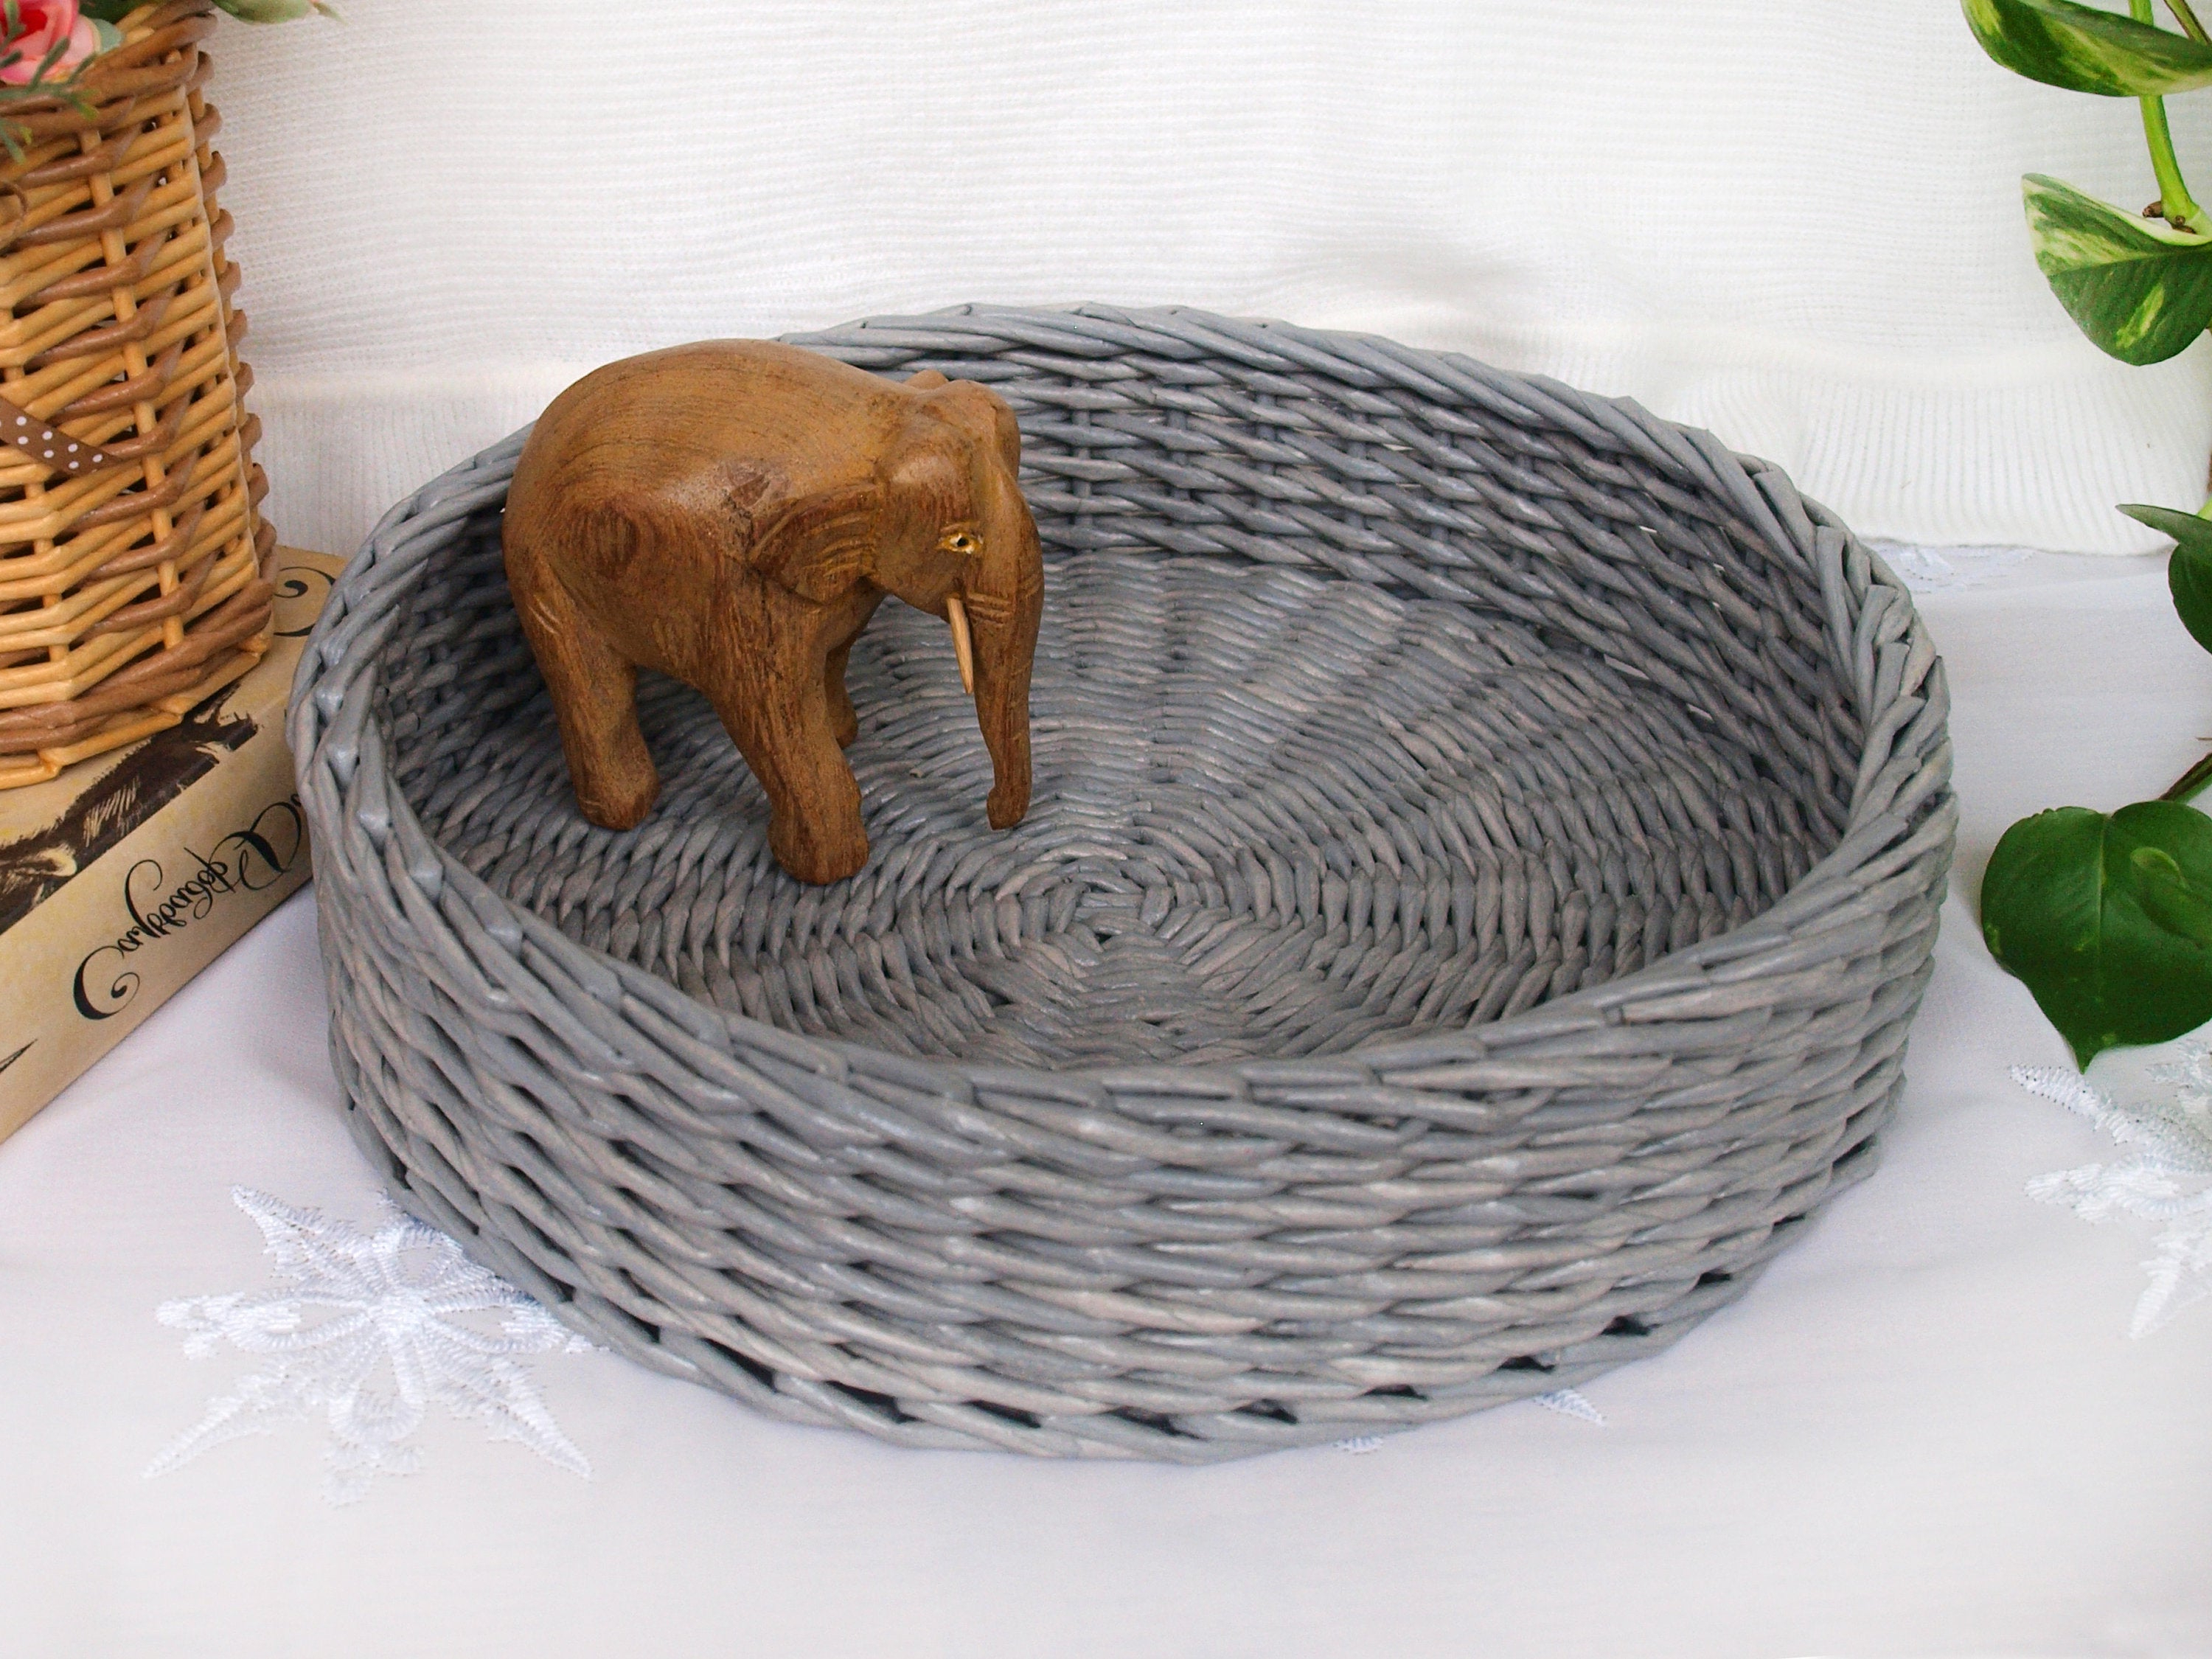 Recent Rustic Coffee Tables With Wicker Storage Baskets Within Gray Round Wicker Basket Tray Serving Tray Coffee Table Decorative Tray Rustic Ottoman Tray Farmhouse Decor Centerpiece Easter Tray Decor (View 16 of 20)